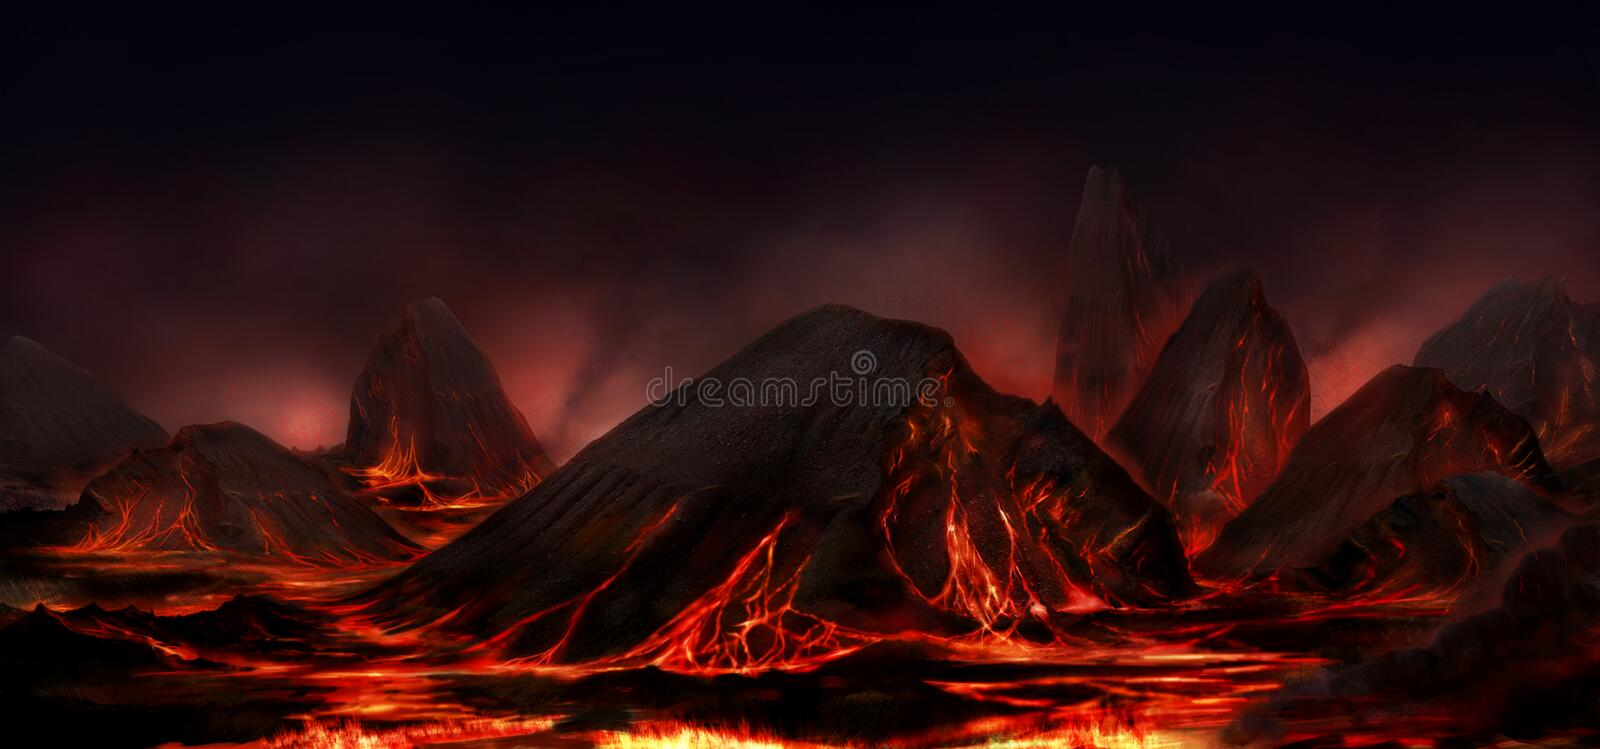 Fantasy night mountains and lava dark landscape. Digital image background royalty free illustration